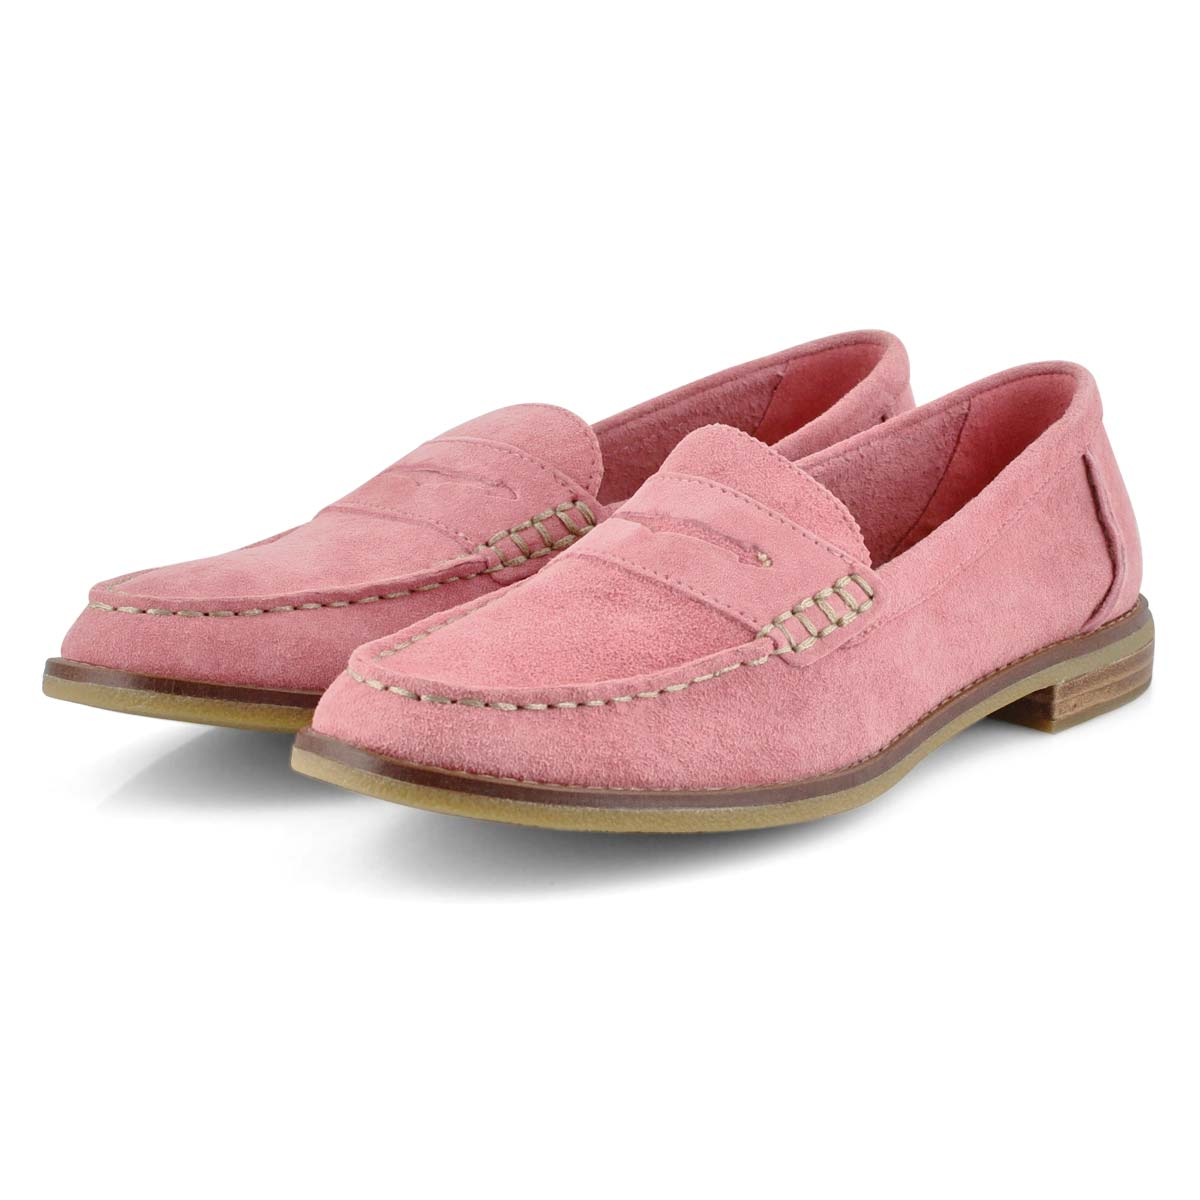 Lds Seaport Penny coral casual loafer